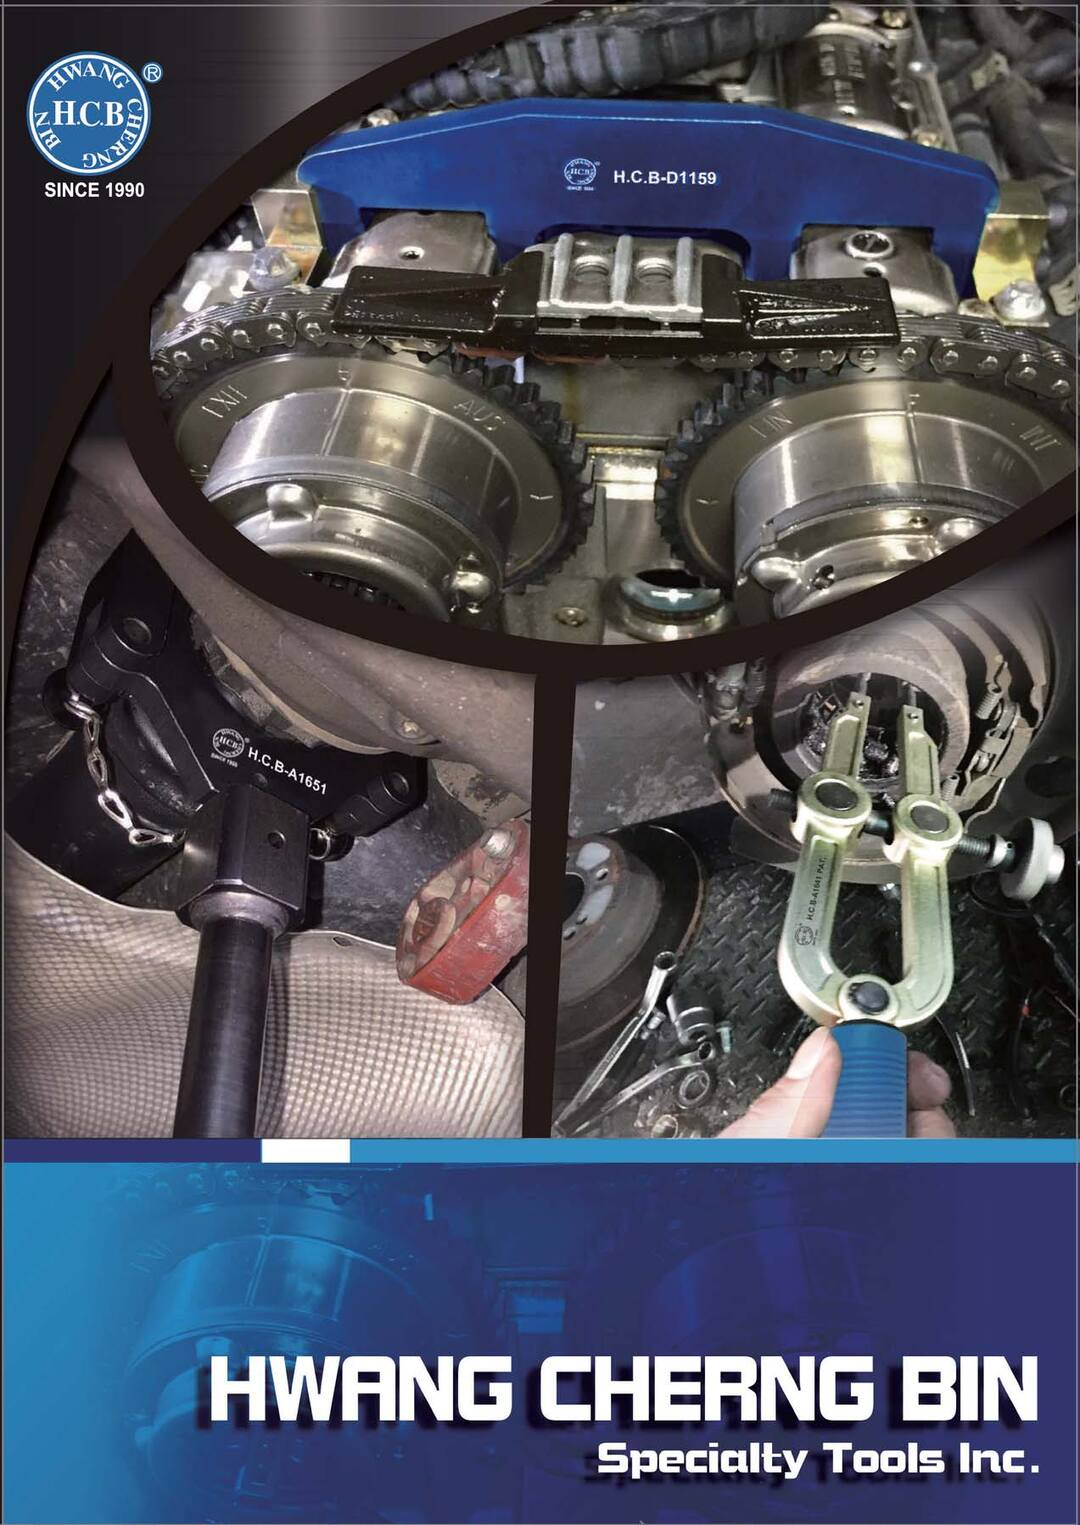 story from: H.C.B CATALOGUE FOR CAR- CAR SOLUTION